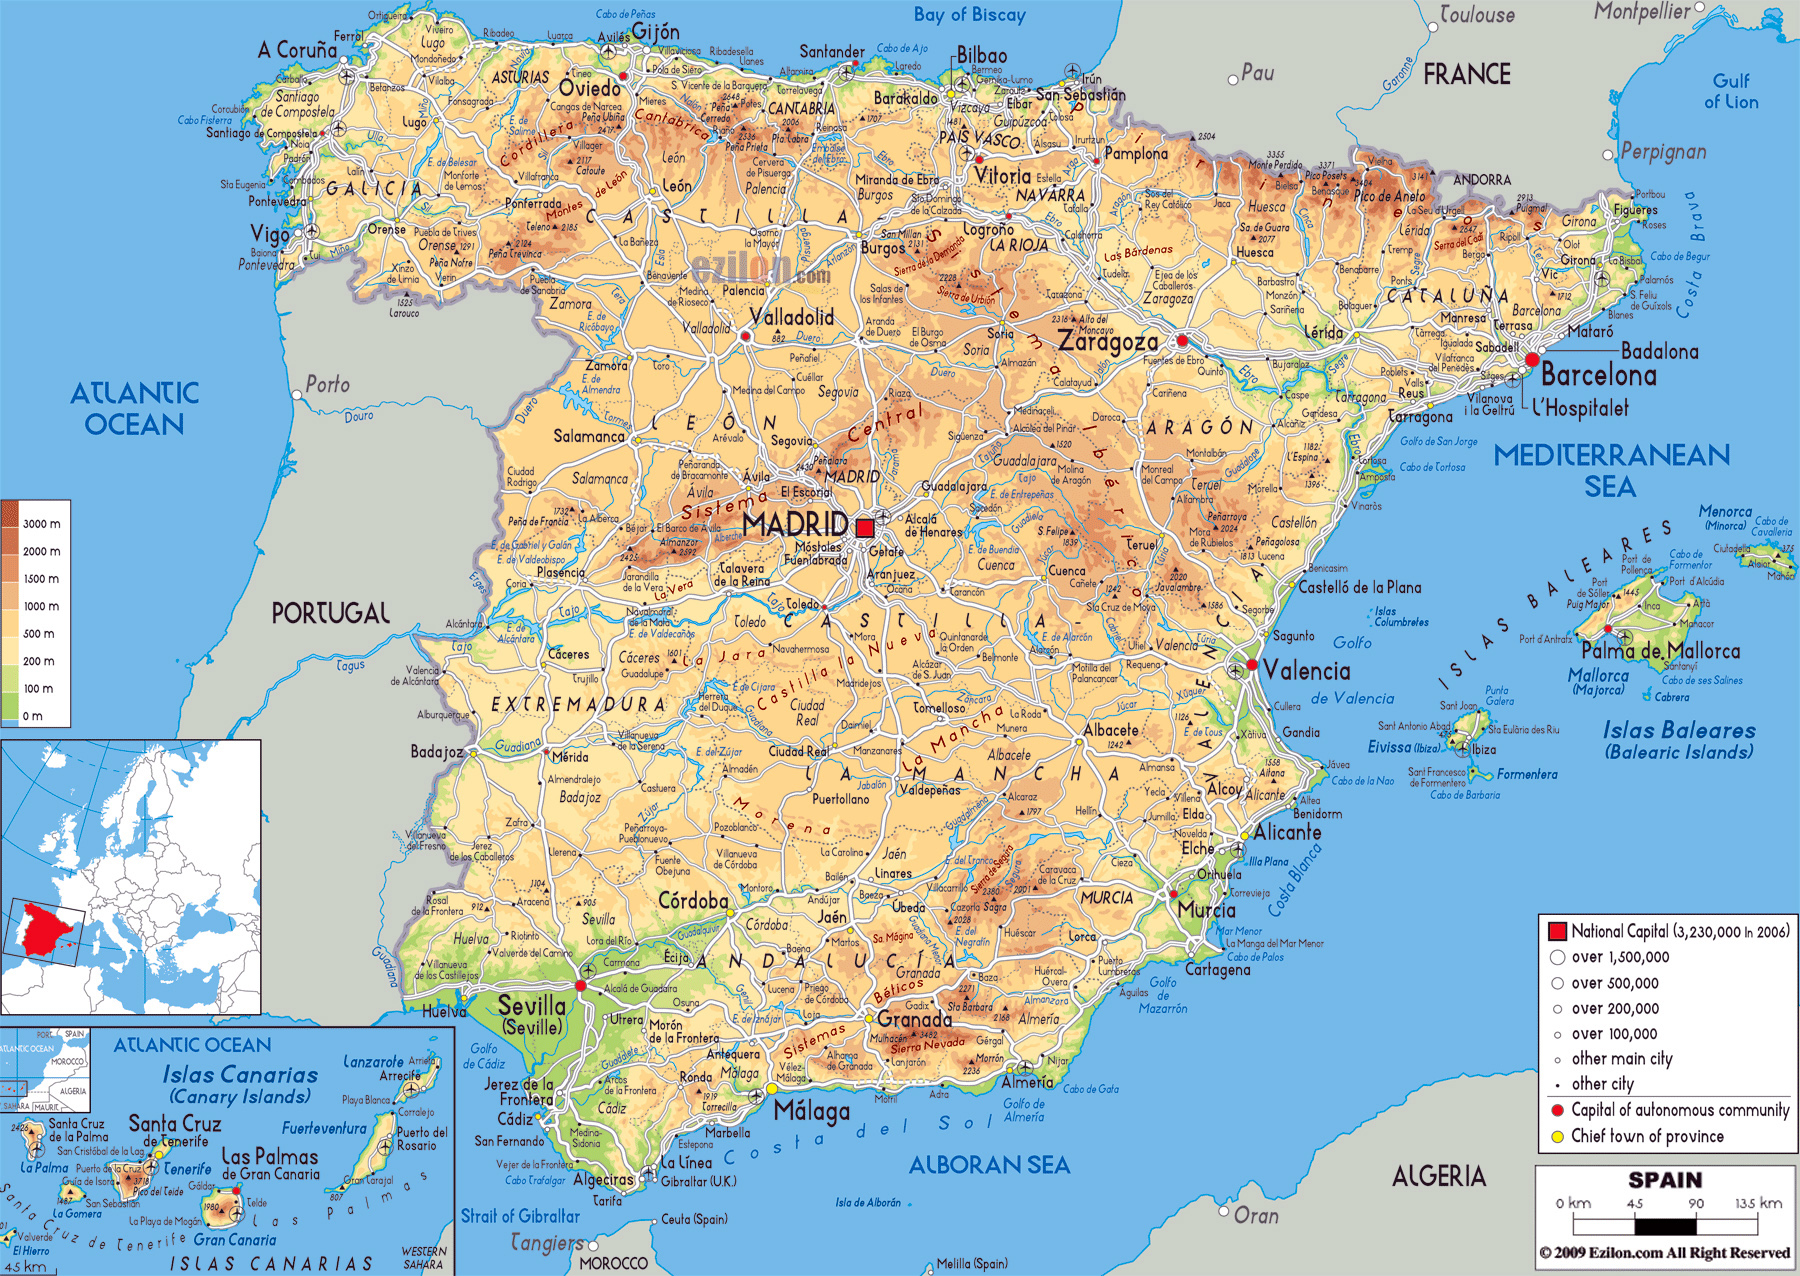 Map Of Spain With Airports.Large Physical Map Of Spain With Roads Cities And Airports Spain